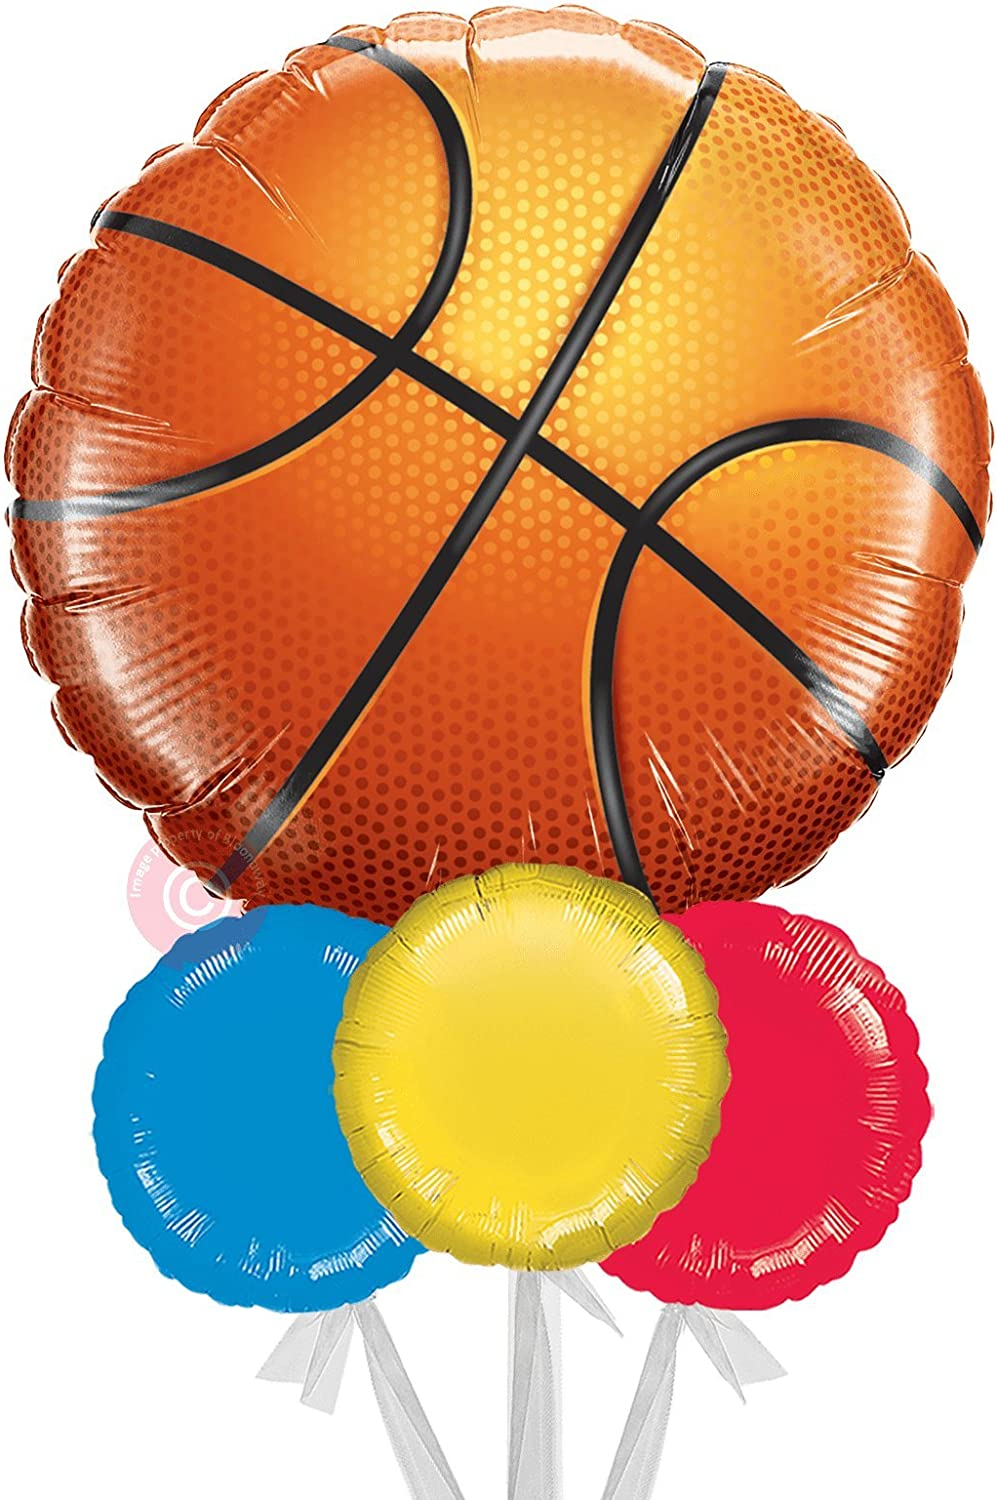 Jumbo Basketball  Inflated Helium Balloon Delivered in a Box  Jumbo Balloon Bouquet  Bloonaway